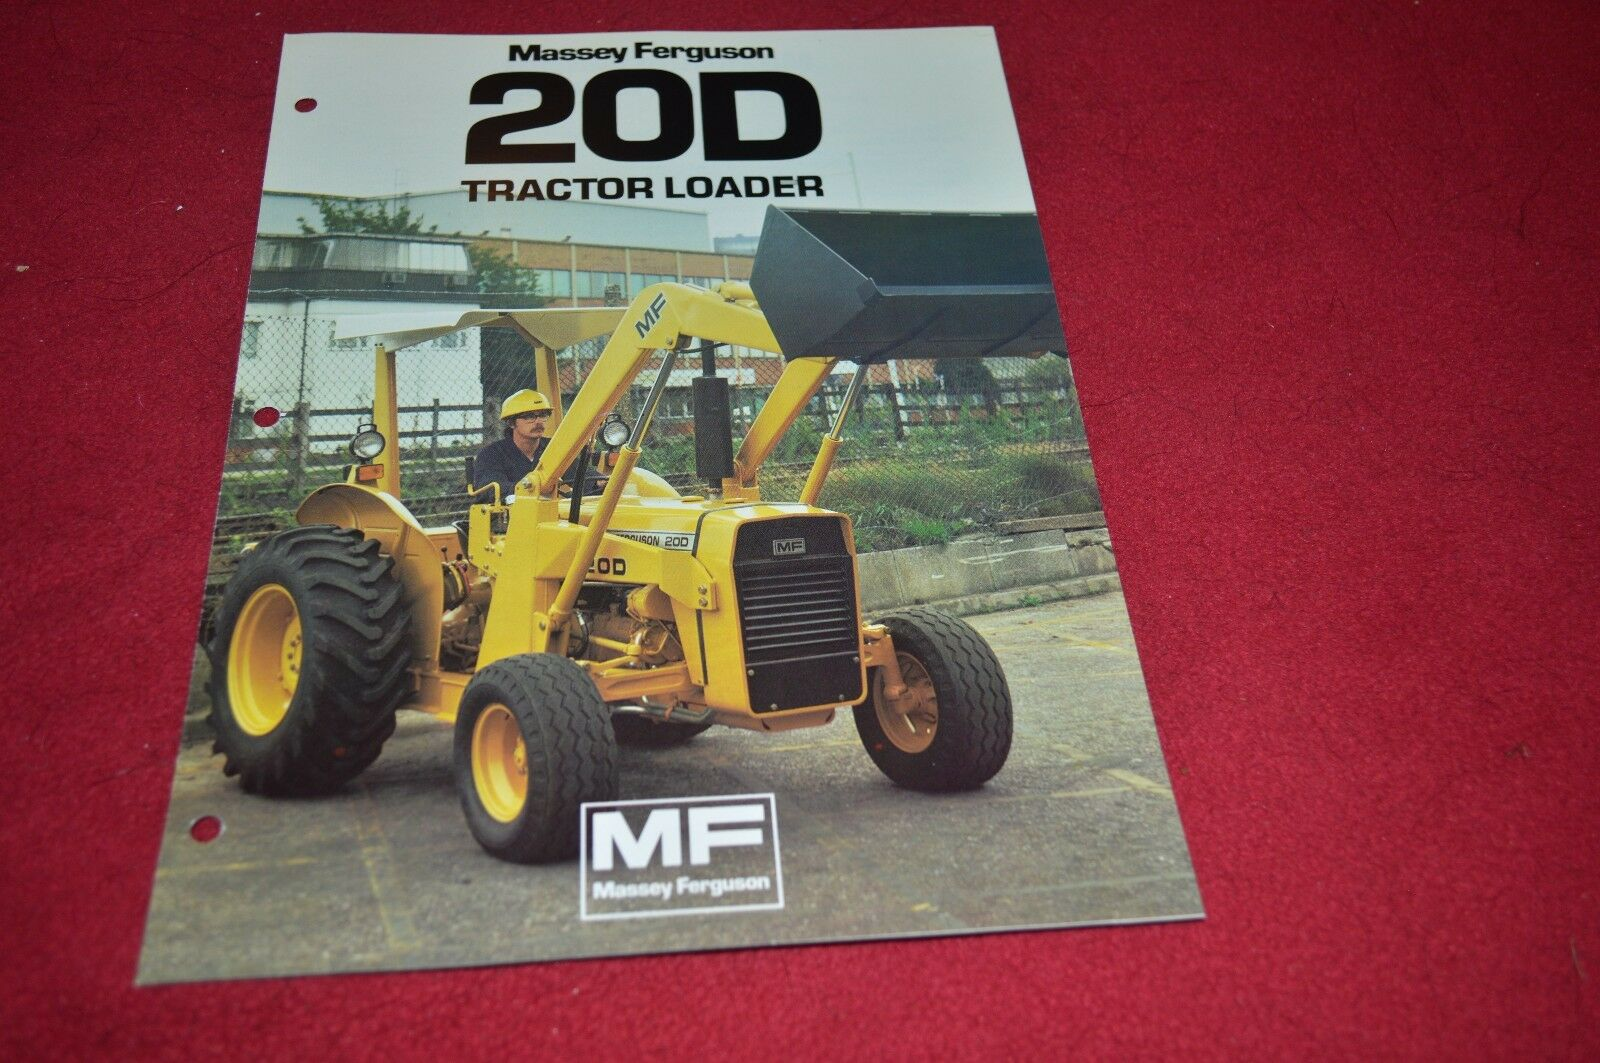 Massey Ferguson 20D Industrial Tractor Loader Dealer's Brochure DCPA2 1 of  1Only 1 available ...